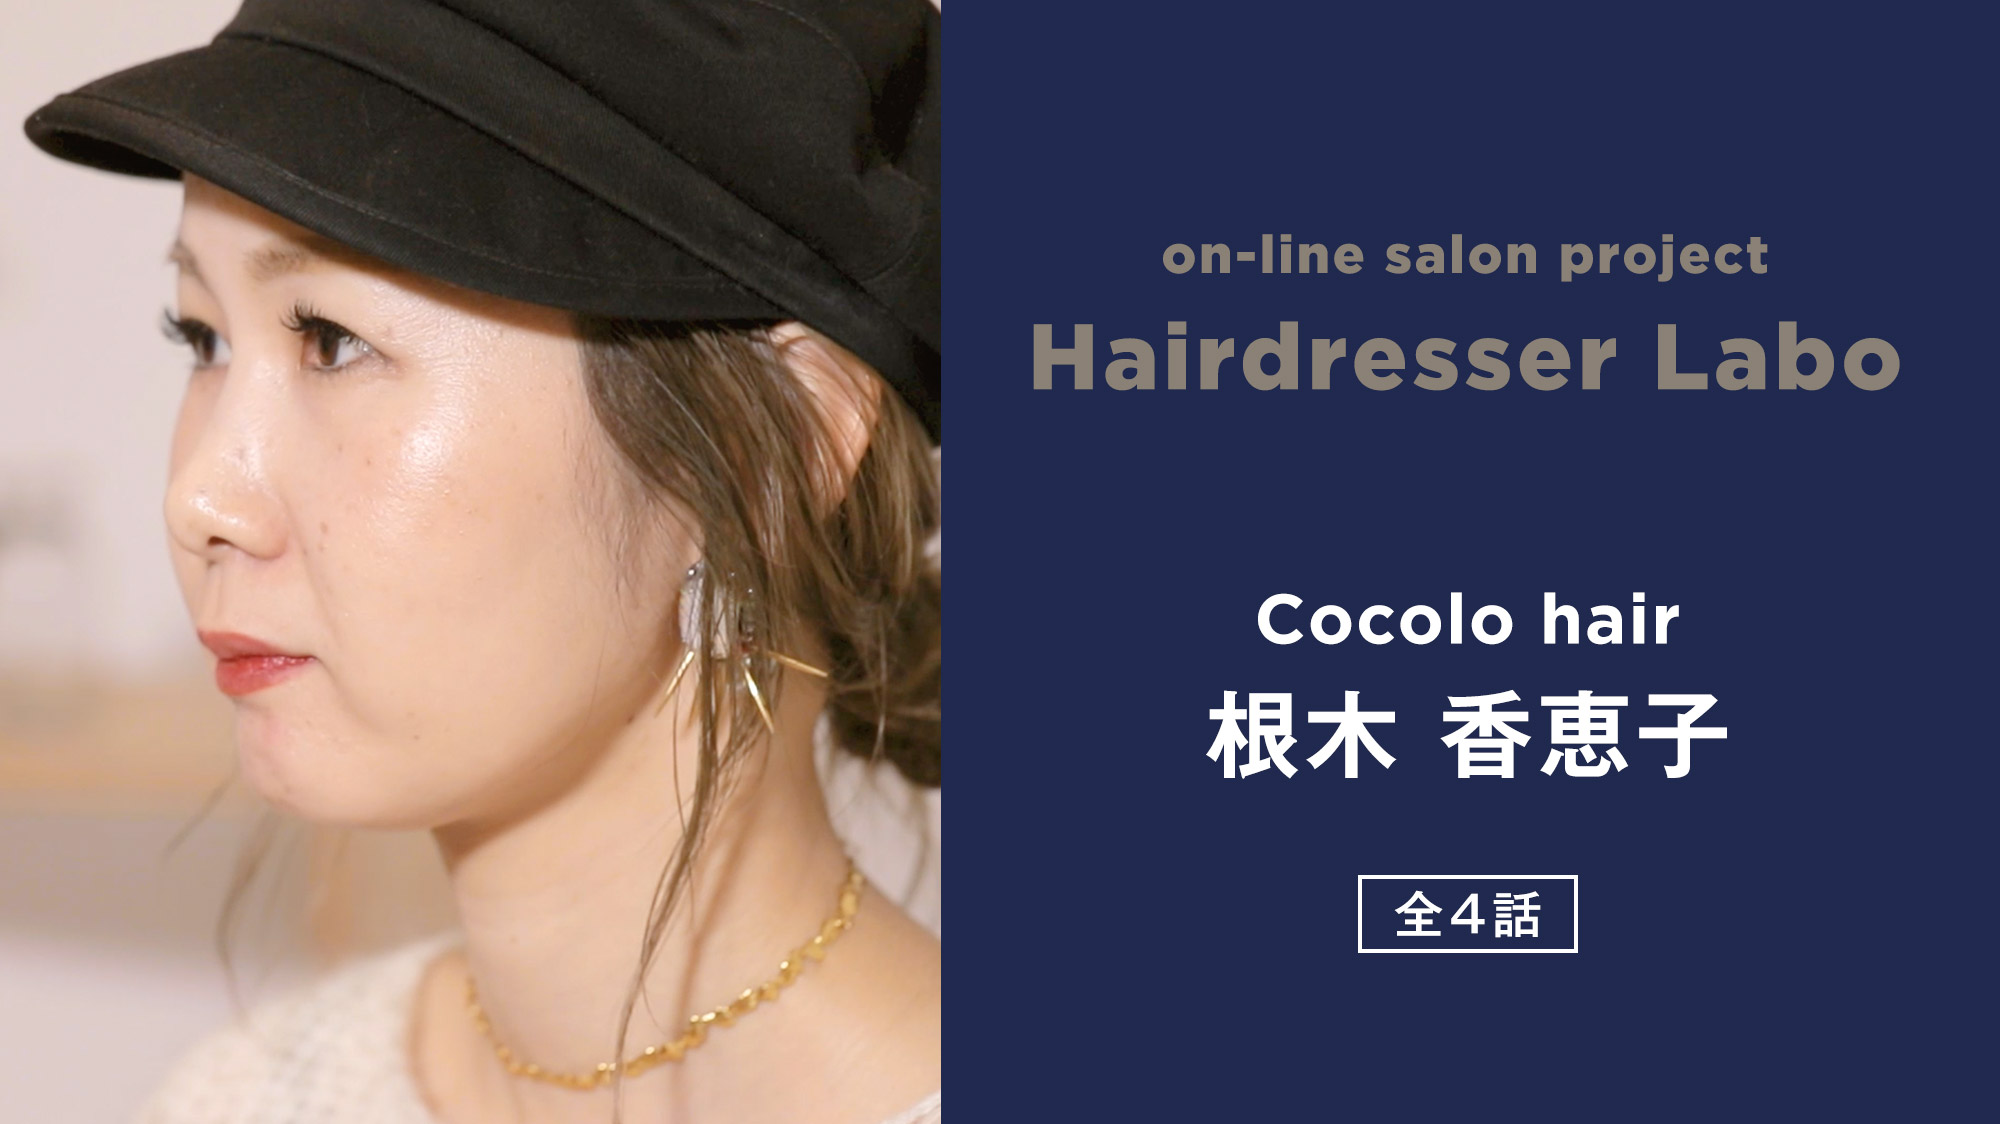 on-line salon project Hairdresser Labo『根木 香恵子』 全4話